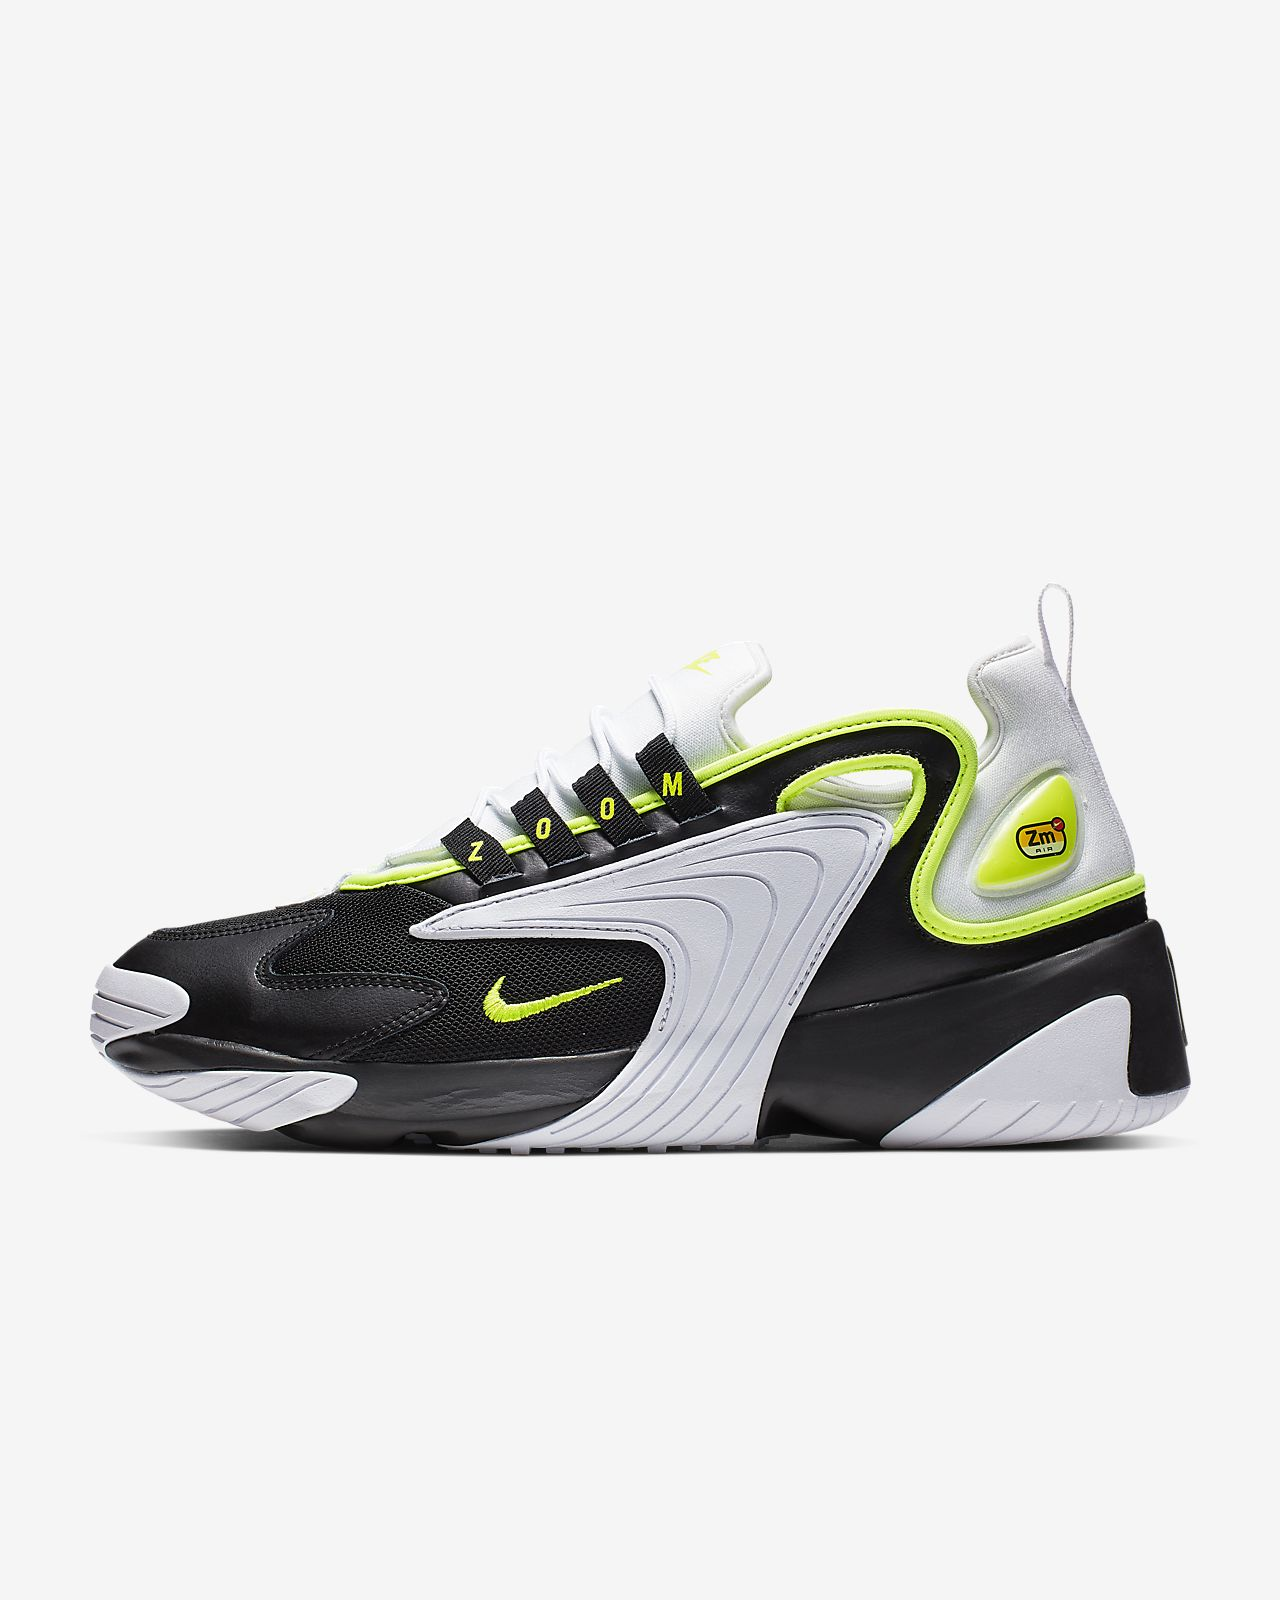 Nike Zoom 2k in 2019 | Nike shoes, Shoes sneakers, Sneakers nike